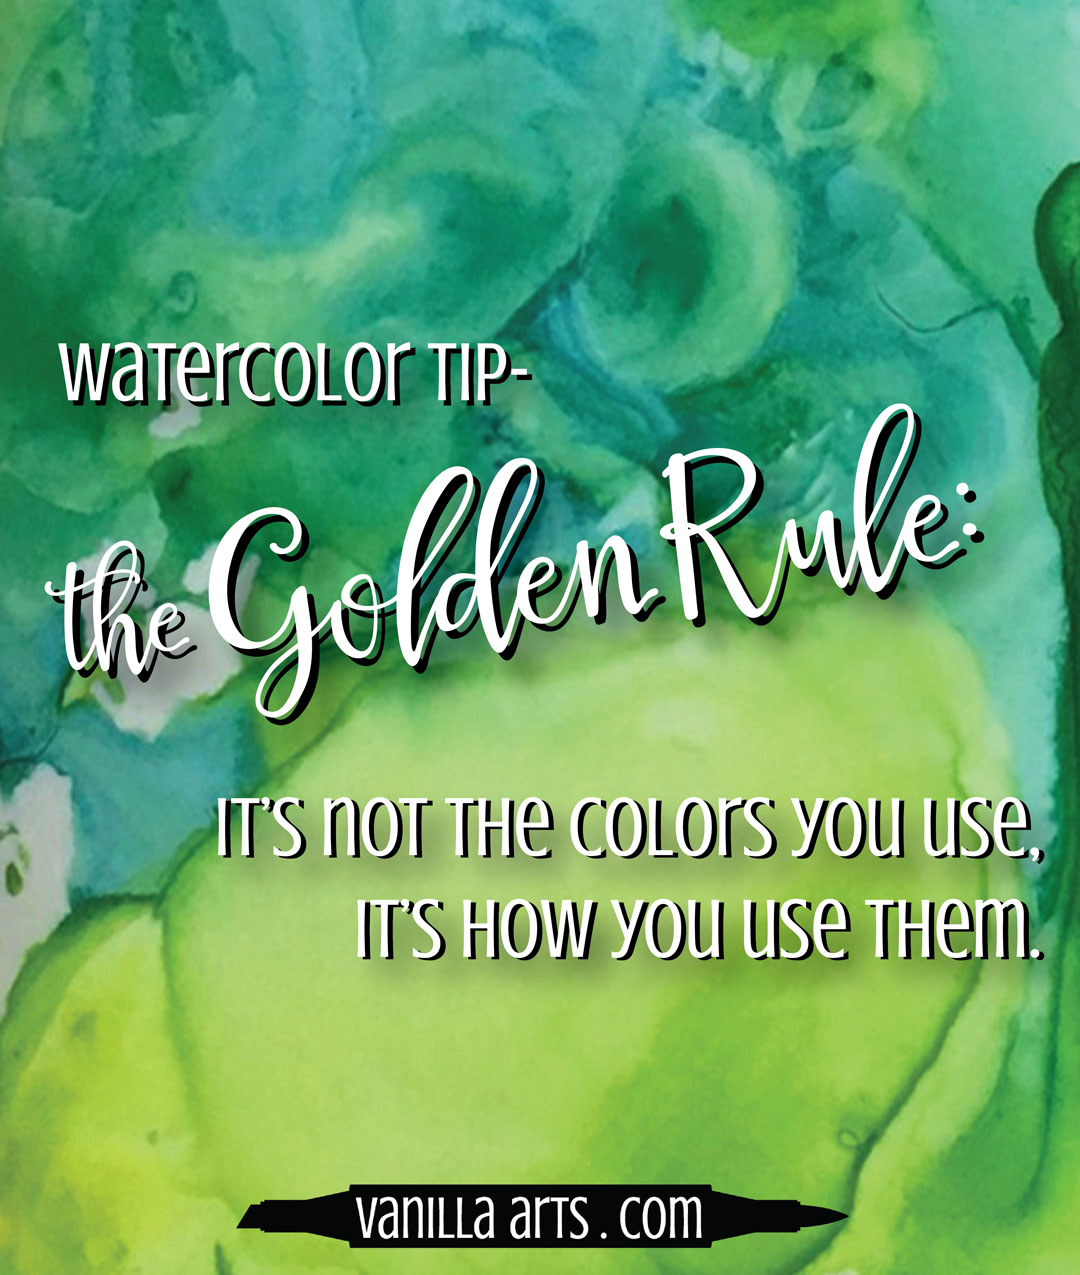 It's not the paints or colors you use, its the colors you mix from them | VanillaArts.com